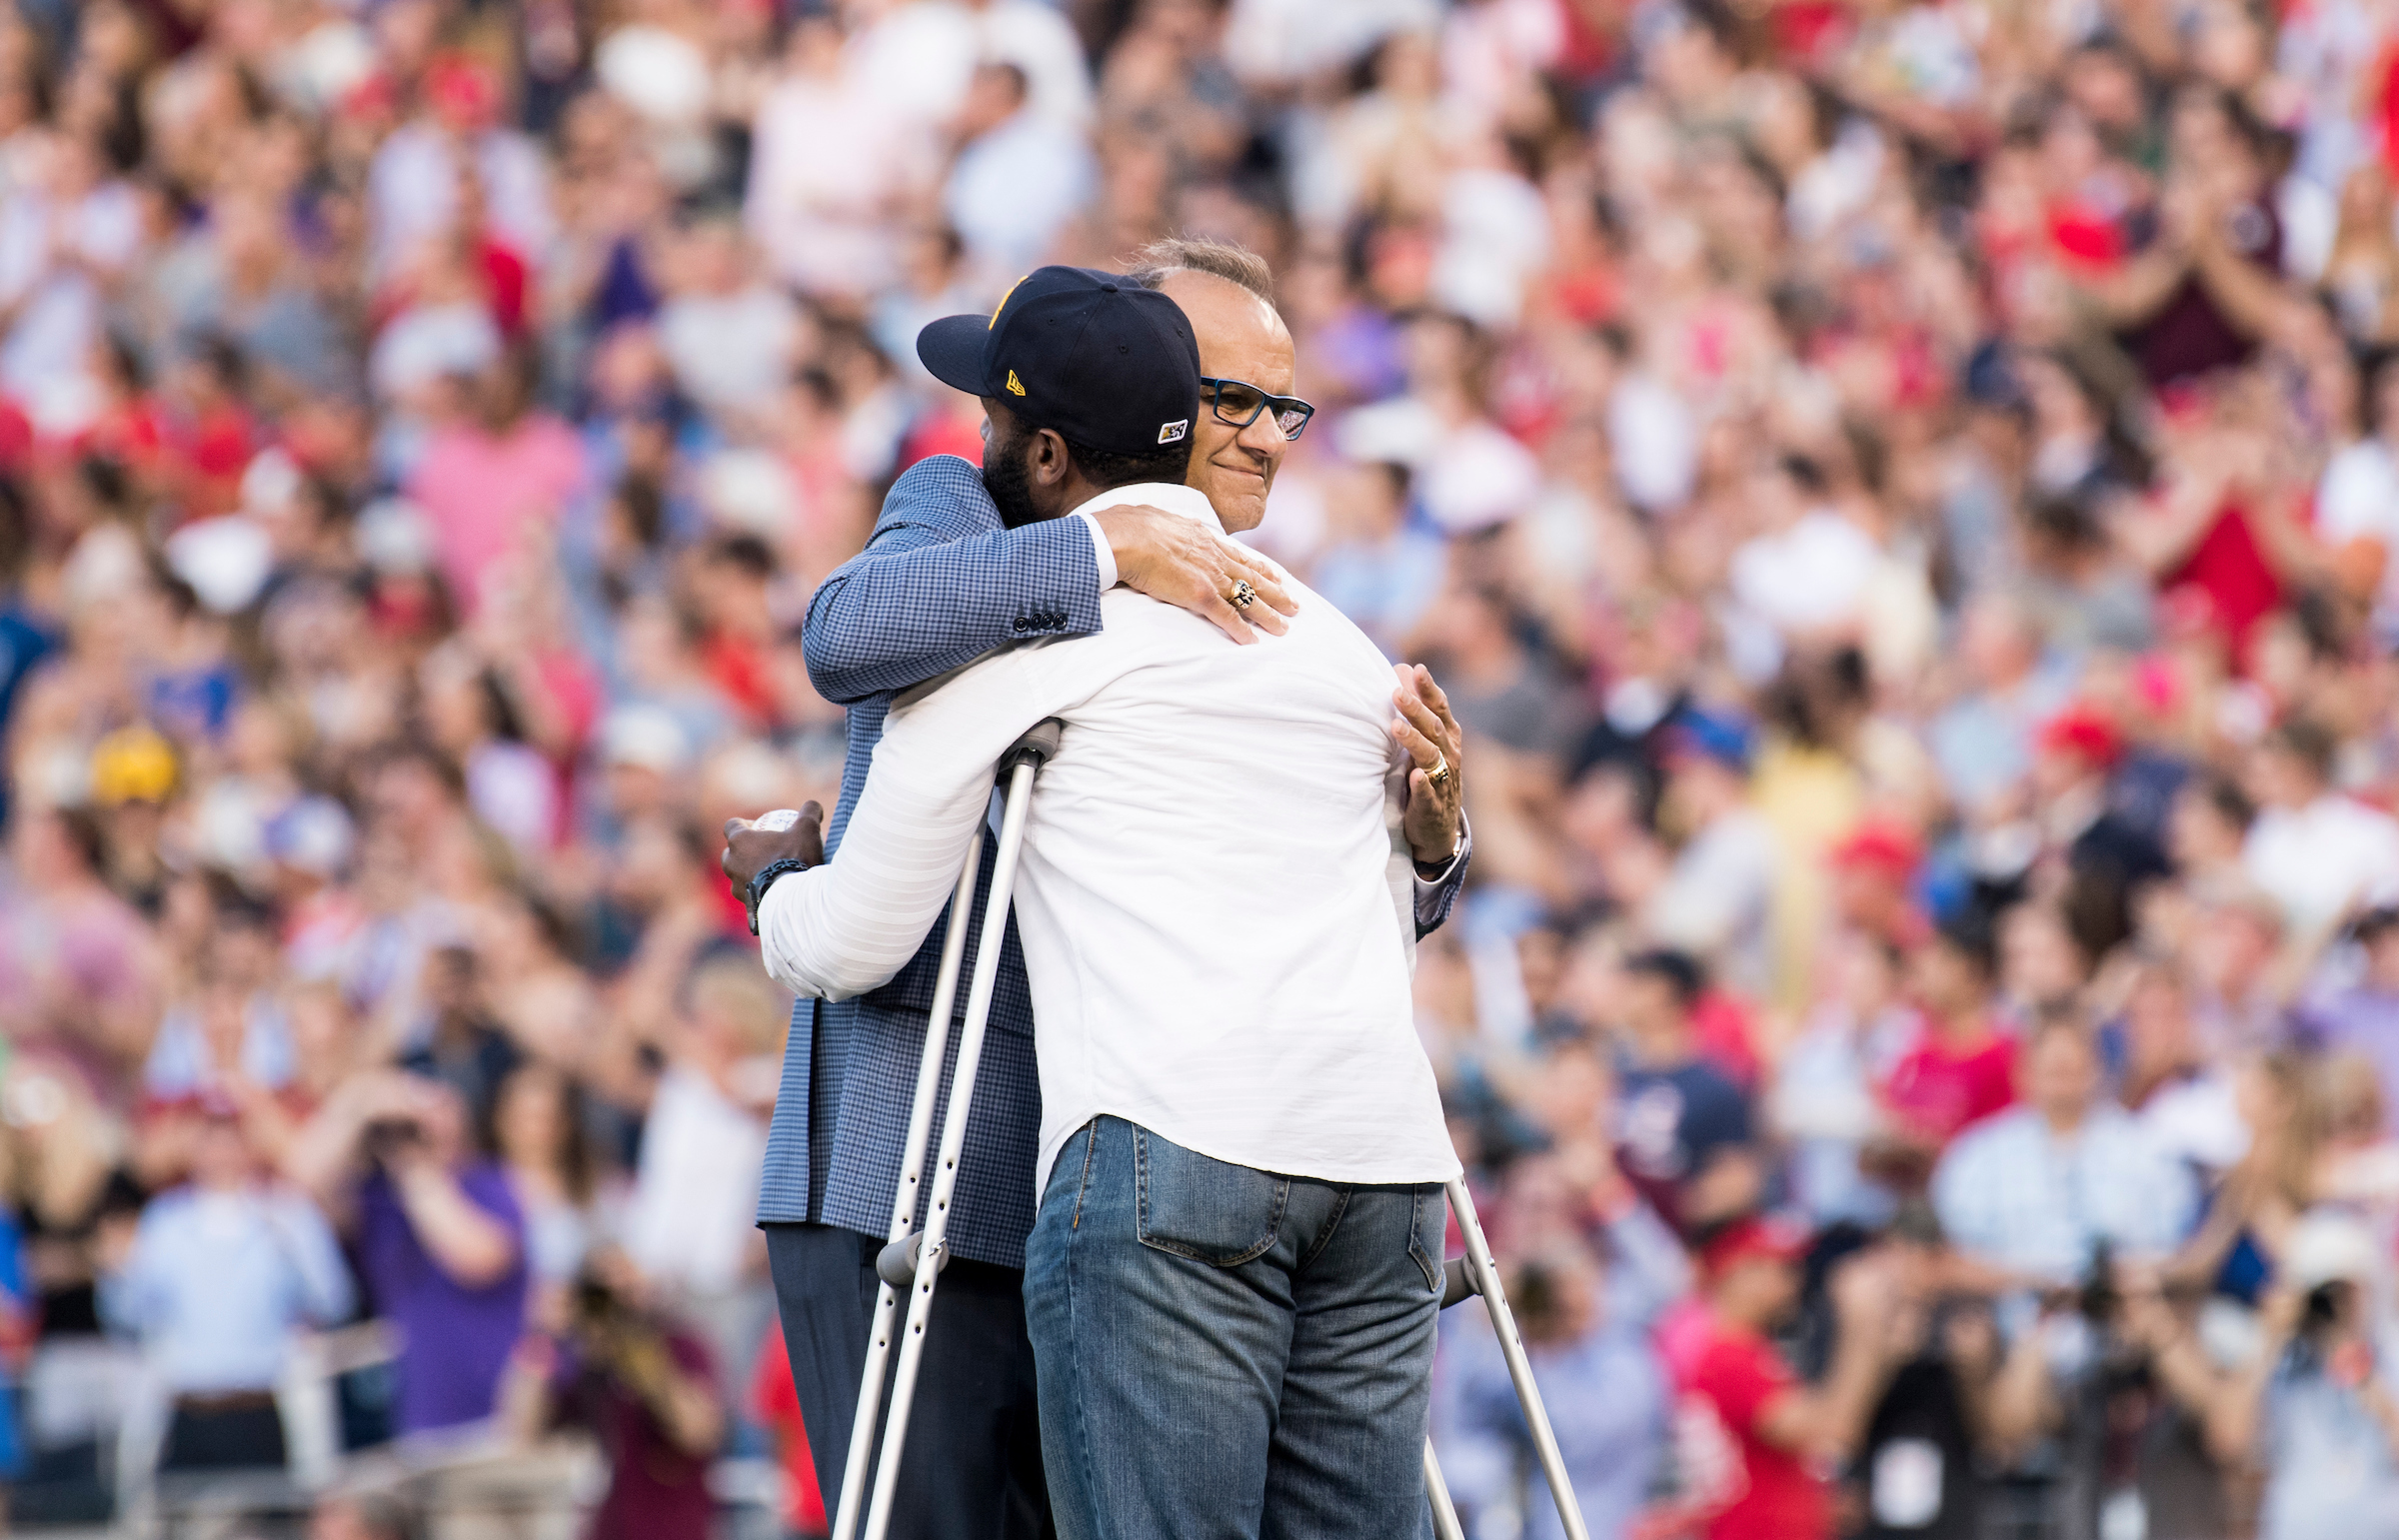 Former New York Yankees manager Joe Torre gives a hug to David Bailey, one of the the injured Capitol Police officers on Rep. Steve Scalise's security detail, before Bailey threw out the first pitch at the annual Congressional Baseball Game. (Bill Clark/CQ Roll Call)